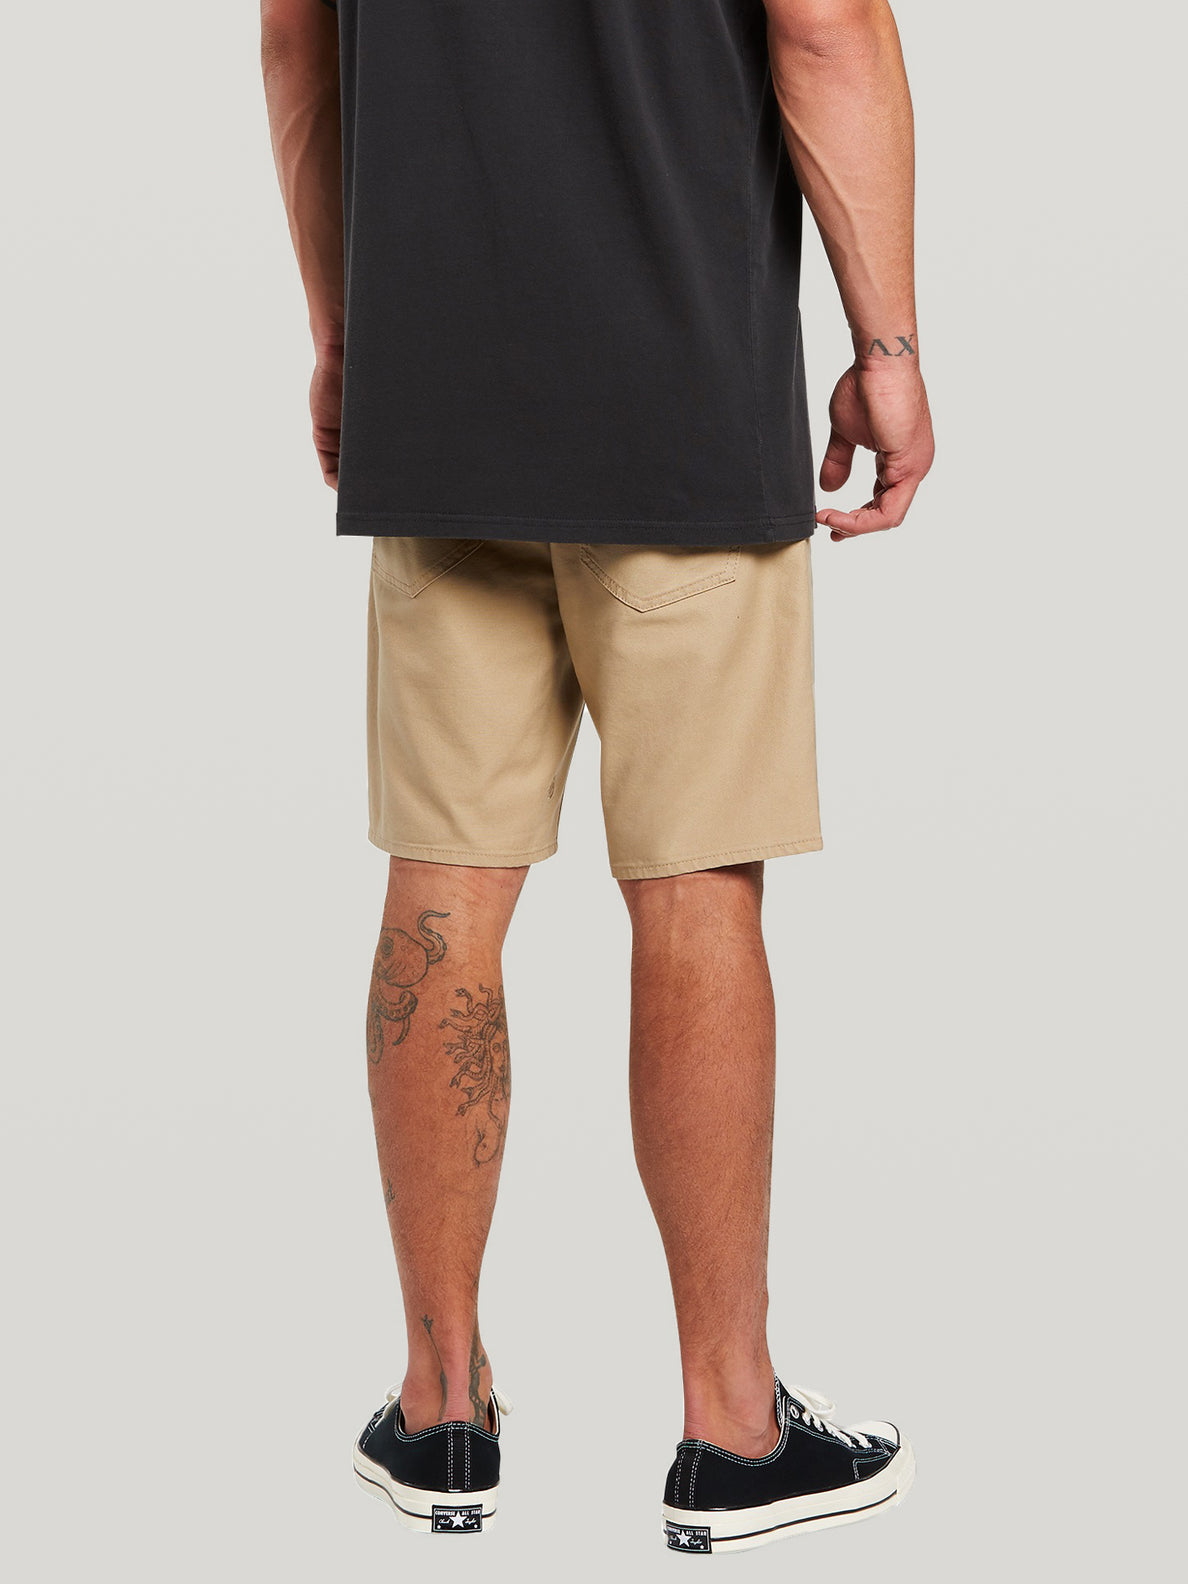 Solver Canvas 5 Pocket Shorts - Gravel (A0932009_GRV) [2]